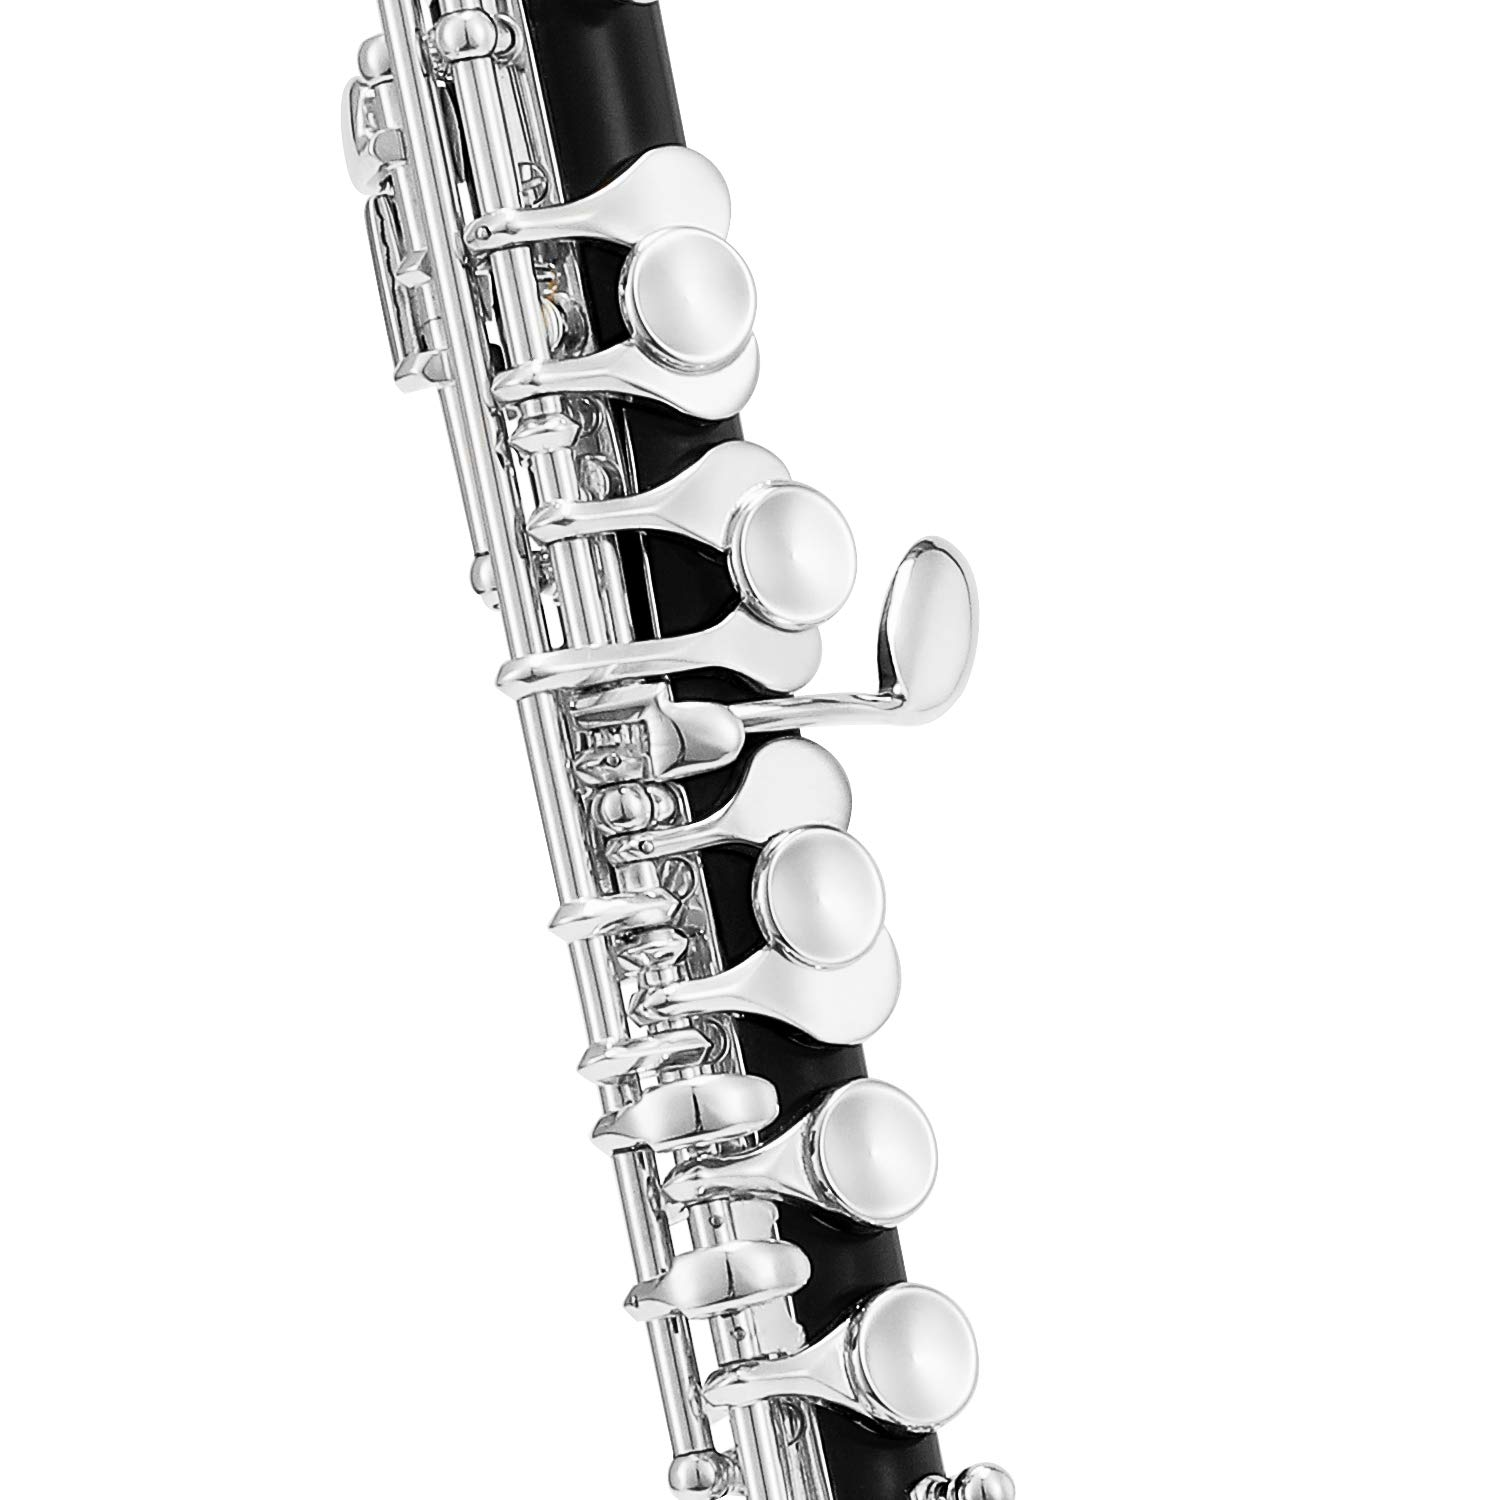 Eastar EPC-3S Black Resin Piccolo Key of C 2-Piece With Silver Plated Keys Hard Case Fingering Chart, Cleaning Rod, Cloth, Swab and Gloves by Eastar (Image #3)